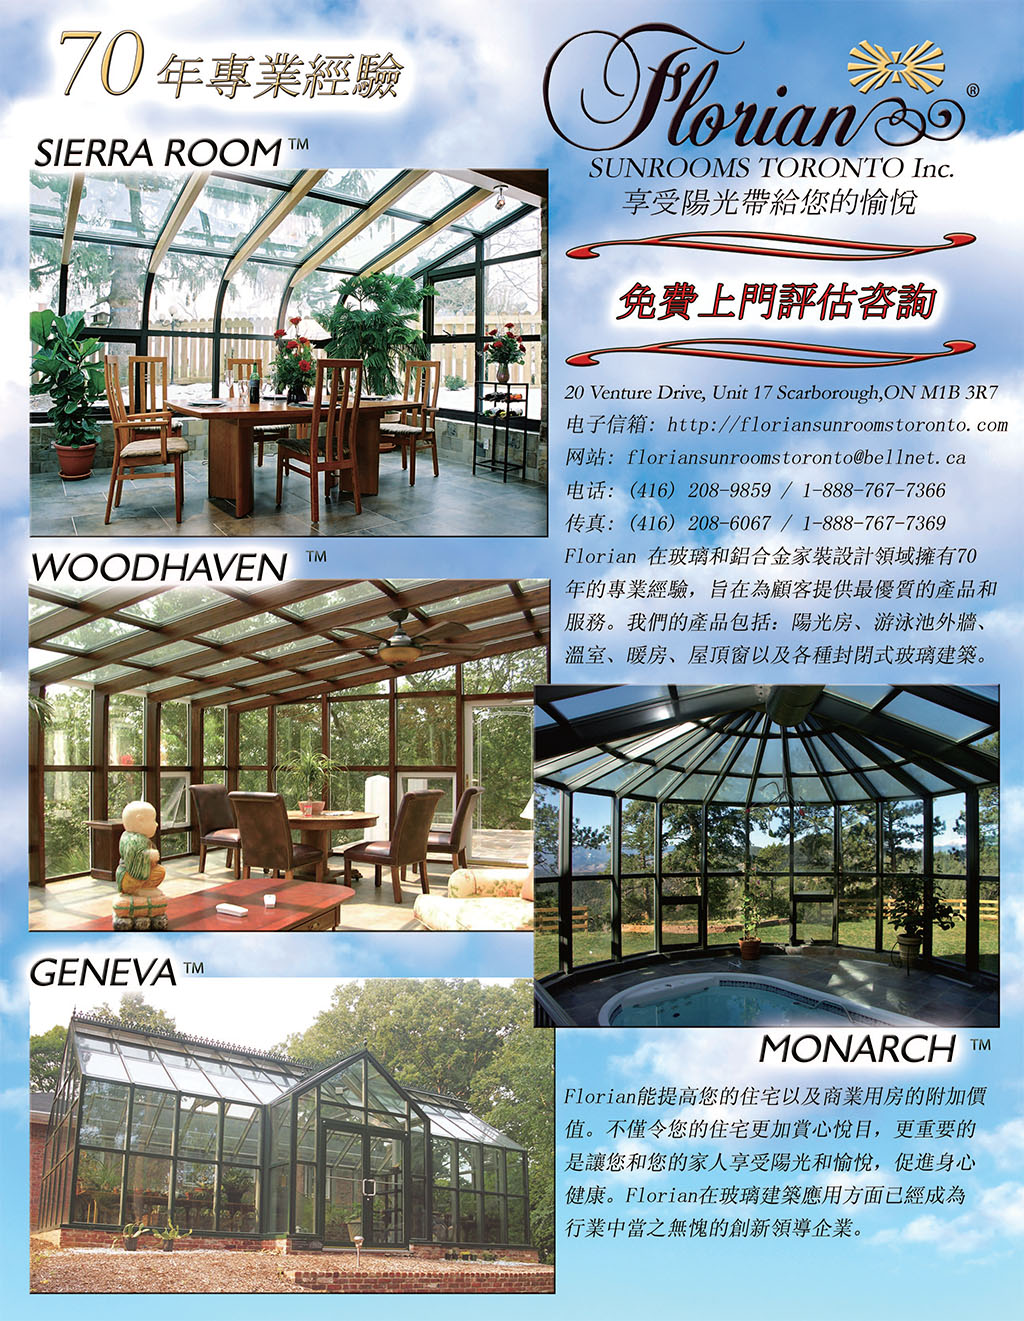 florian-sunrooms-toronto-chinese-flyer-1